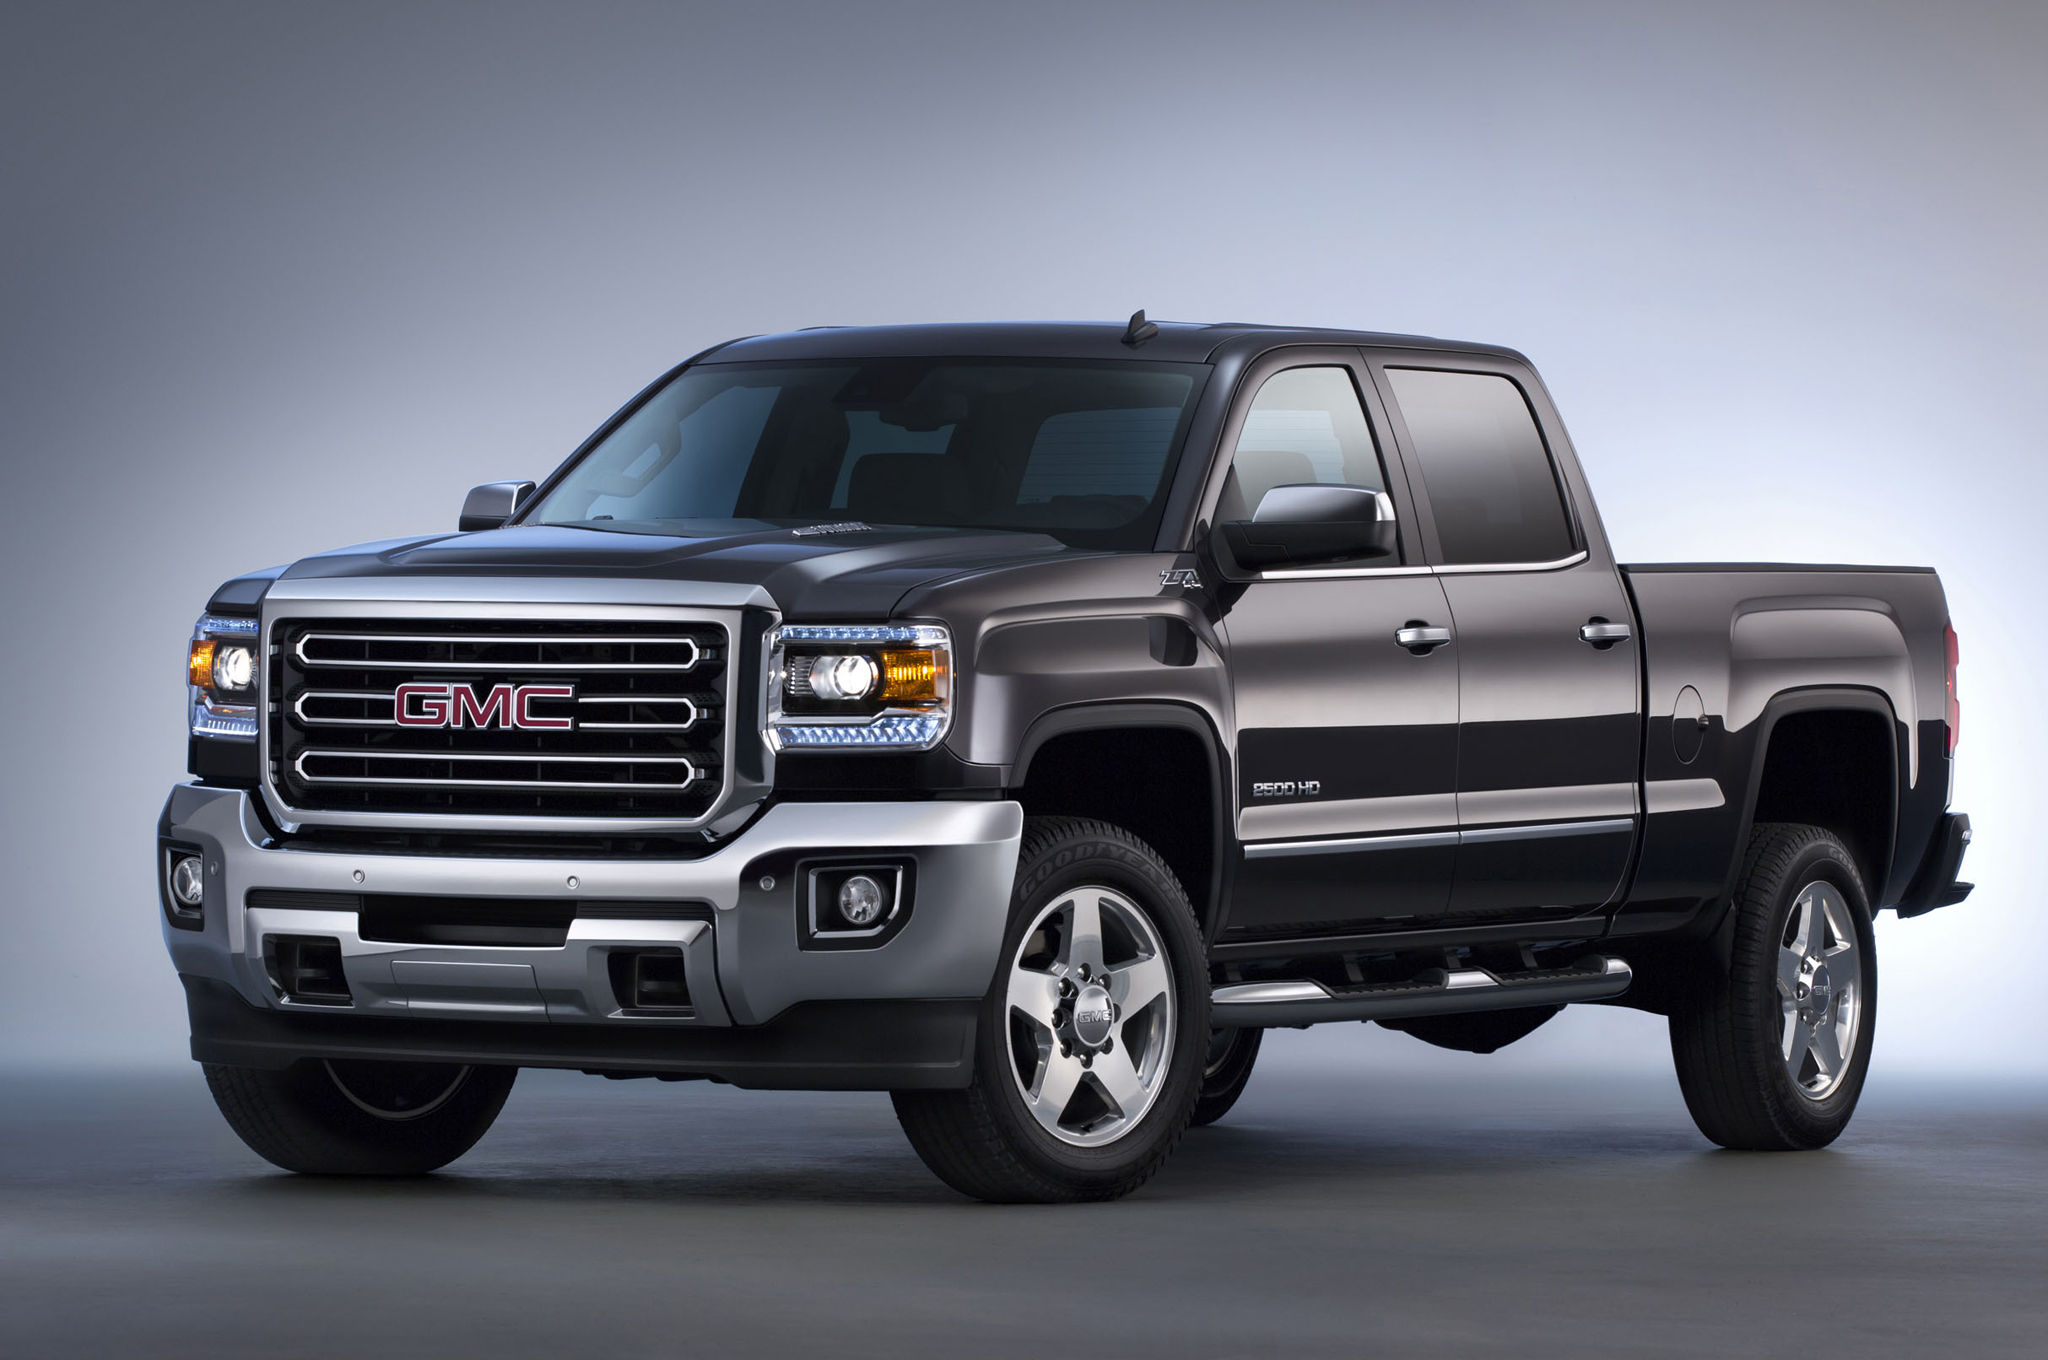 GMC Sierra 2500HD #20